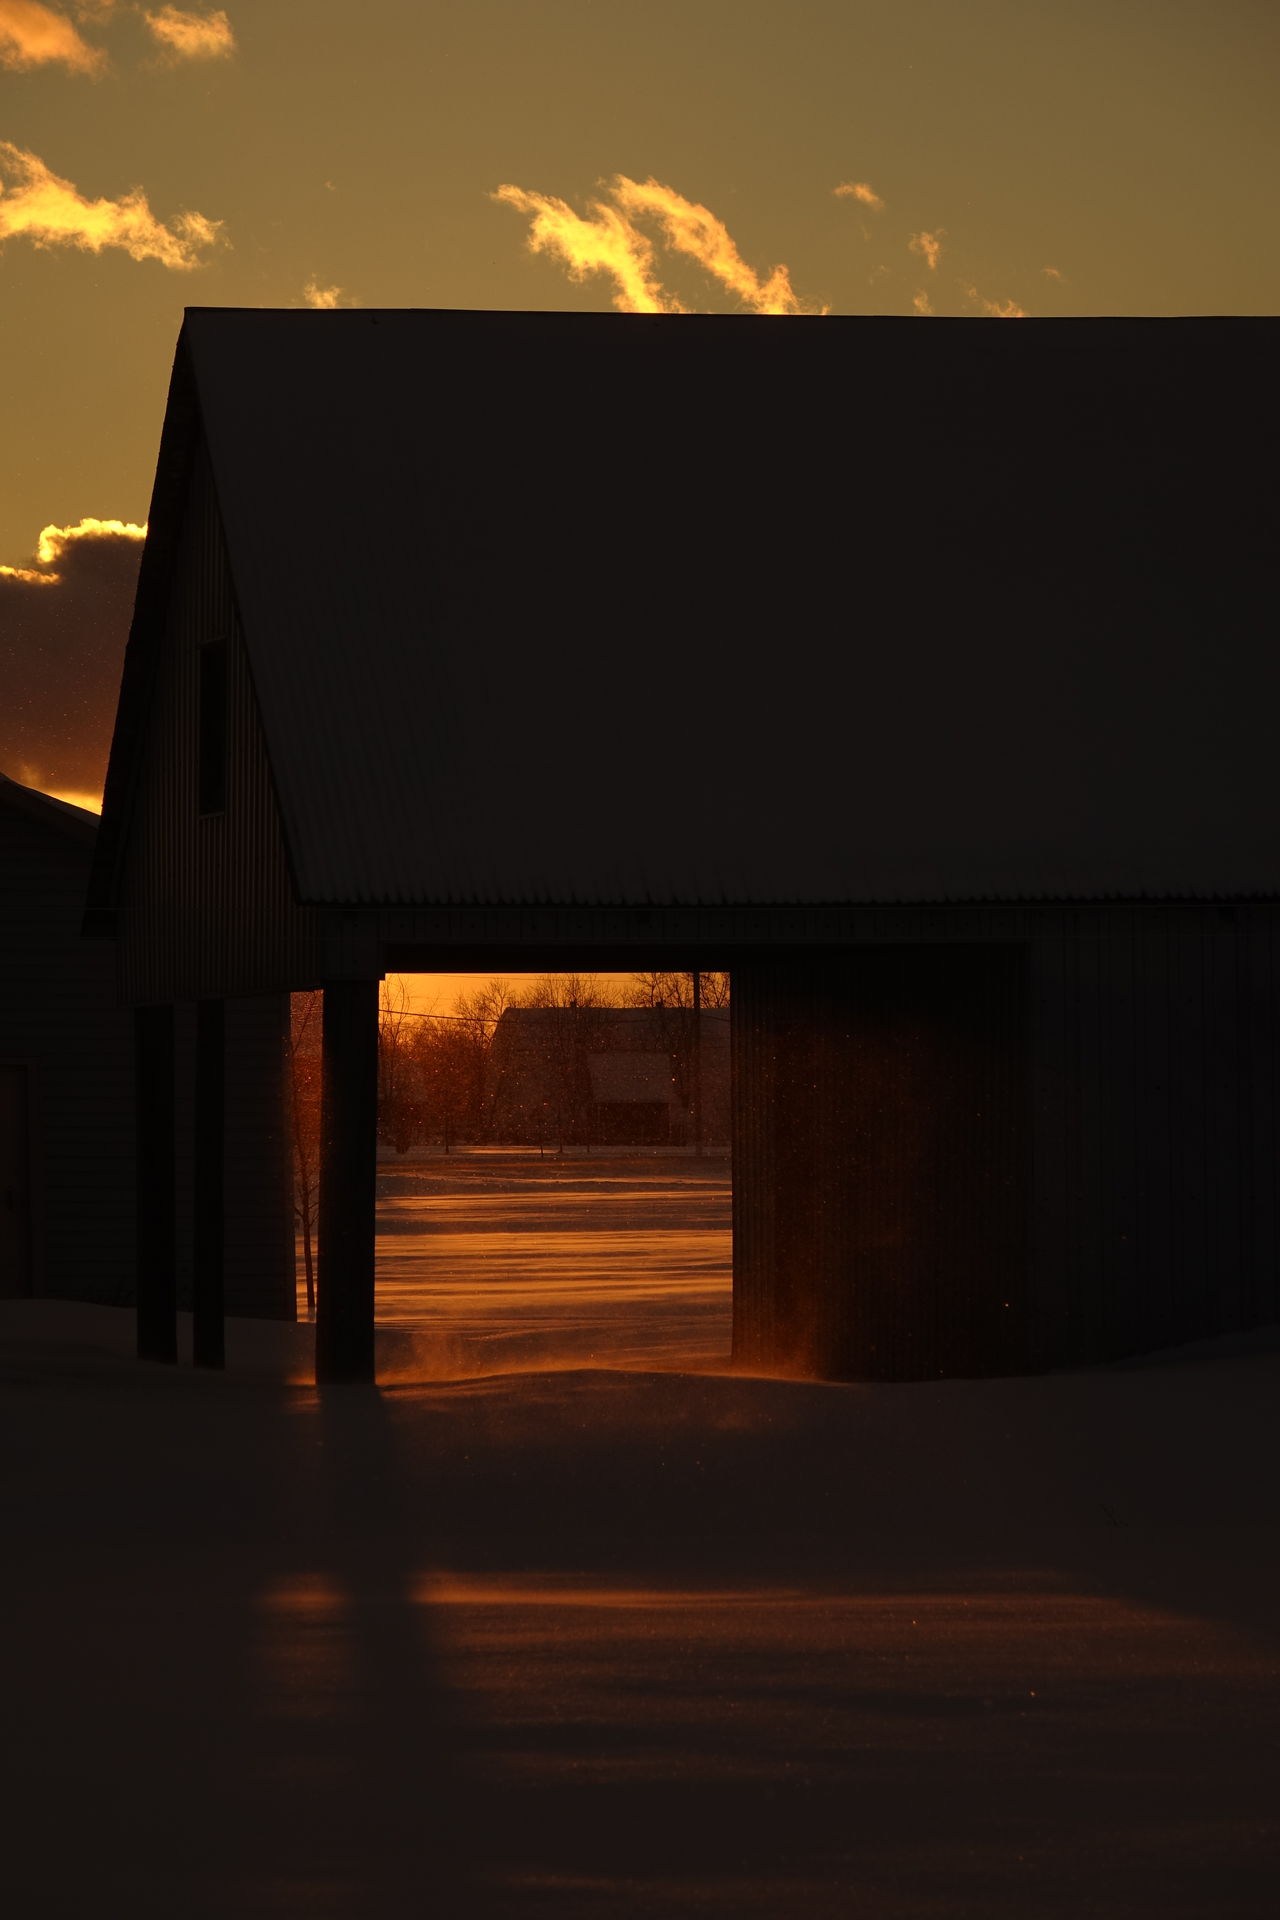 Snow Blowing Snow Sunset Natural Light Wintertime Cold Temperature Beautiful Light Barn Winter Rural Scene Barns Sunlight Sunset_collection Winter Wonderland Sunset Lovers Rural Cold Eye4photography  Getting Inspired EyeEm Best Shots Snowflakes Illuminated